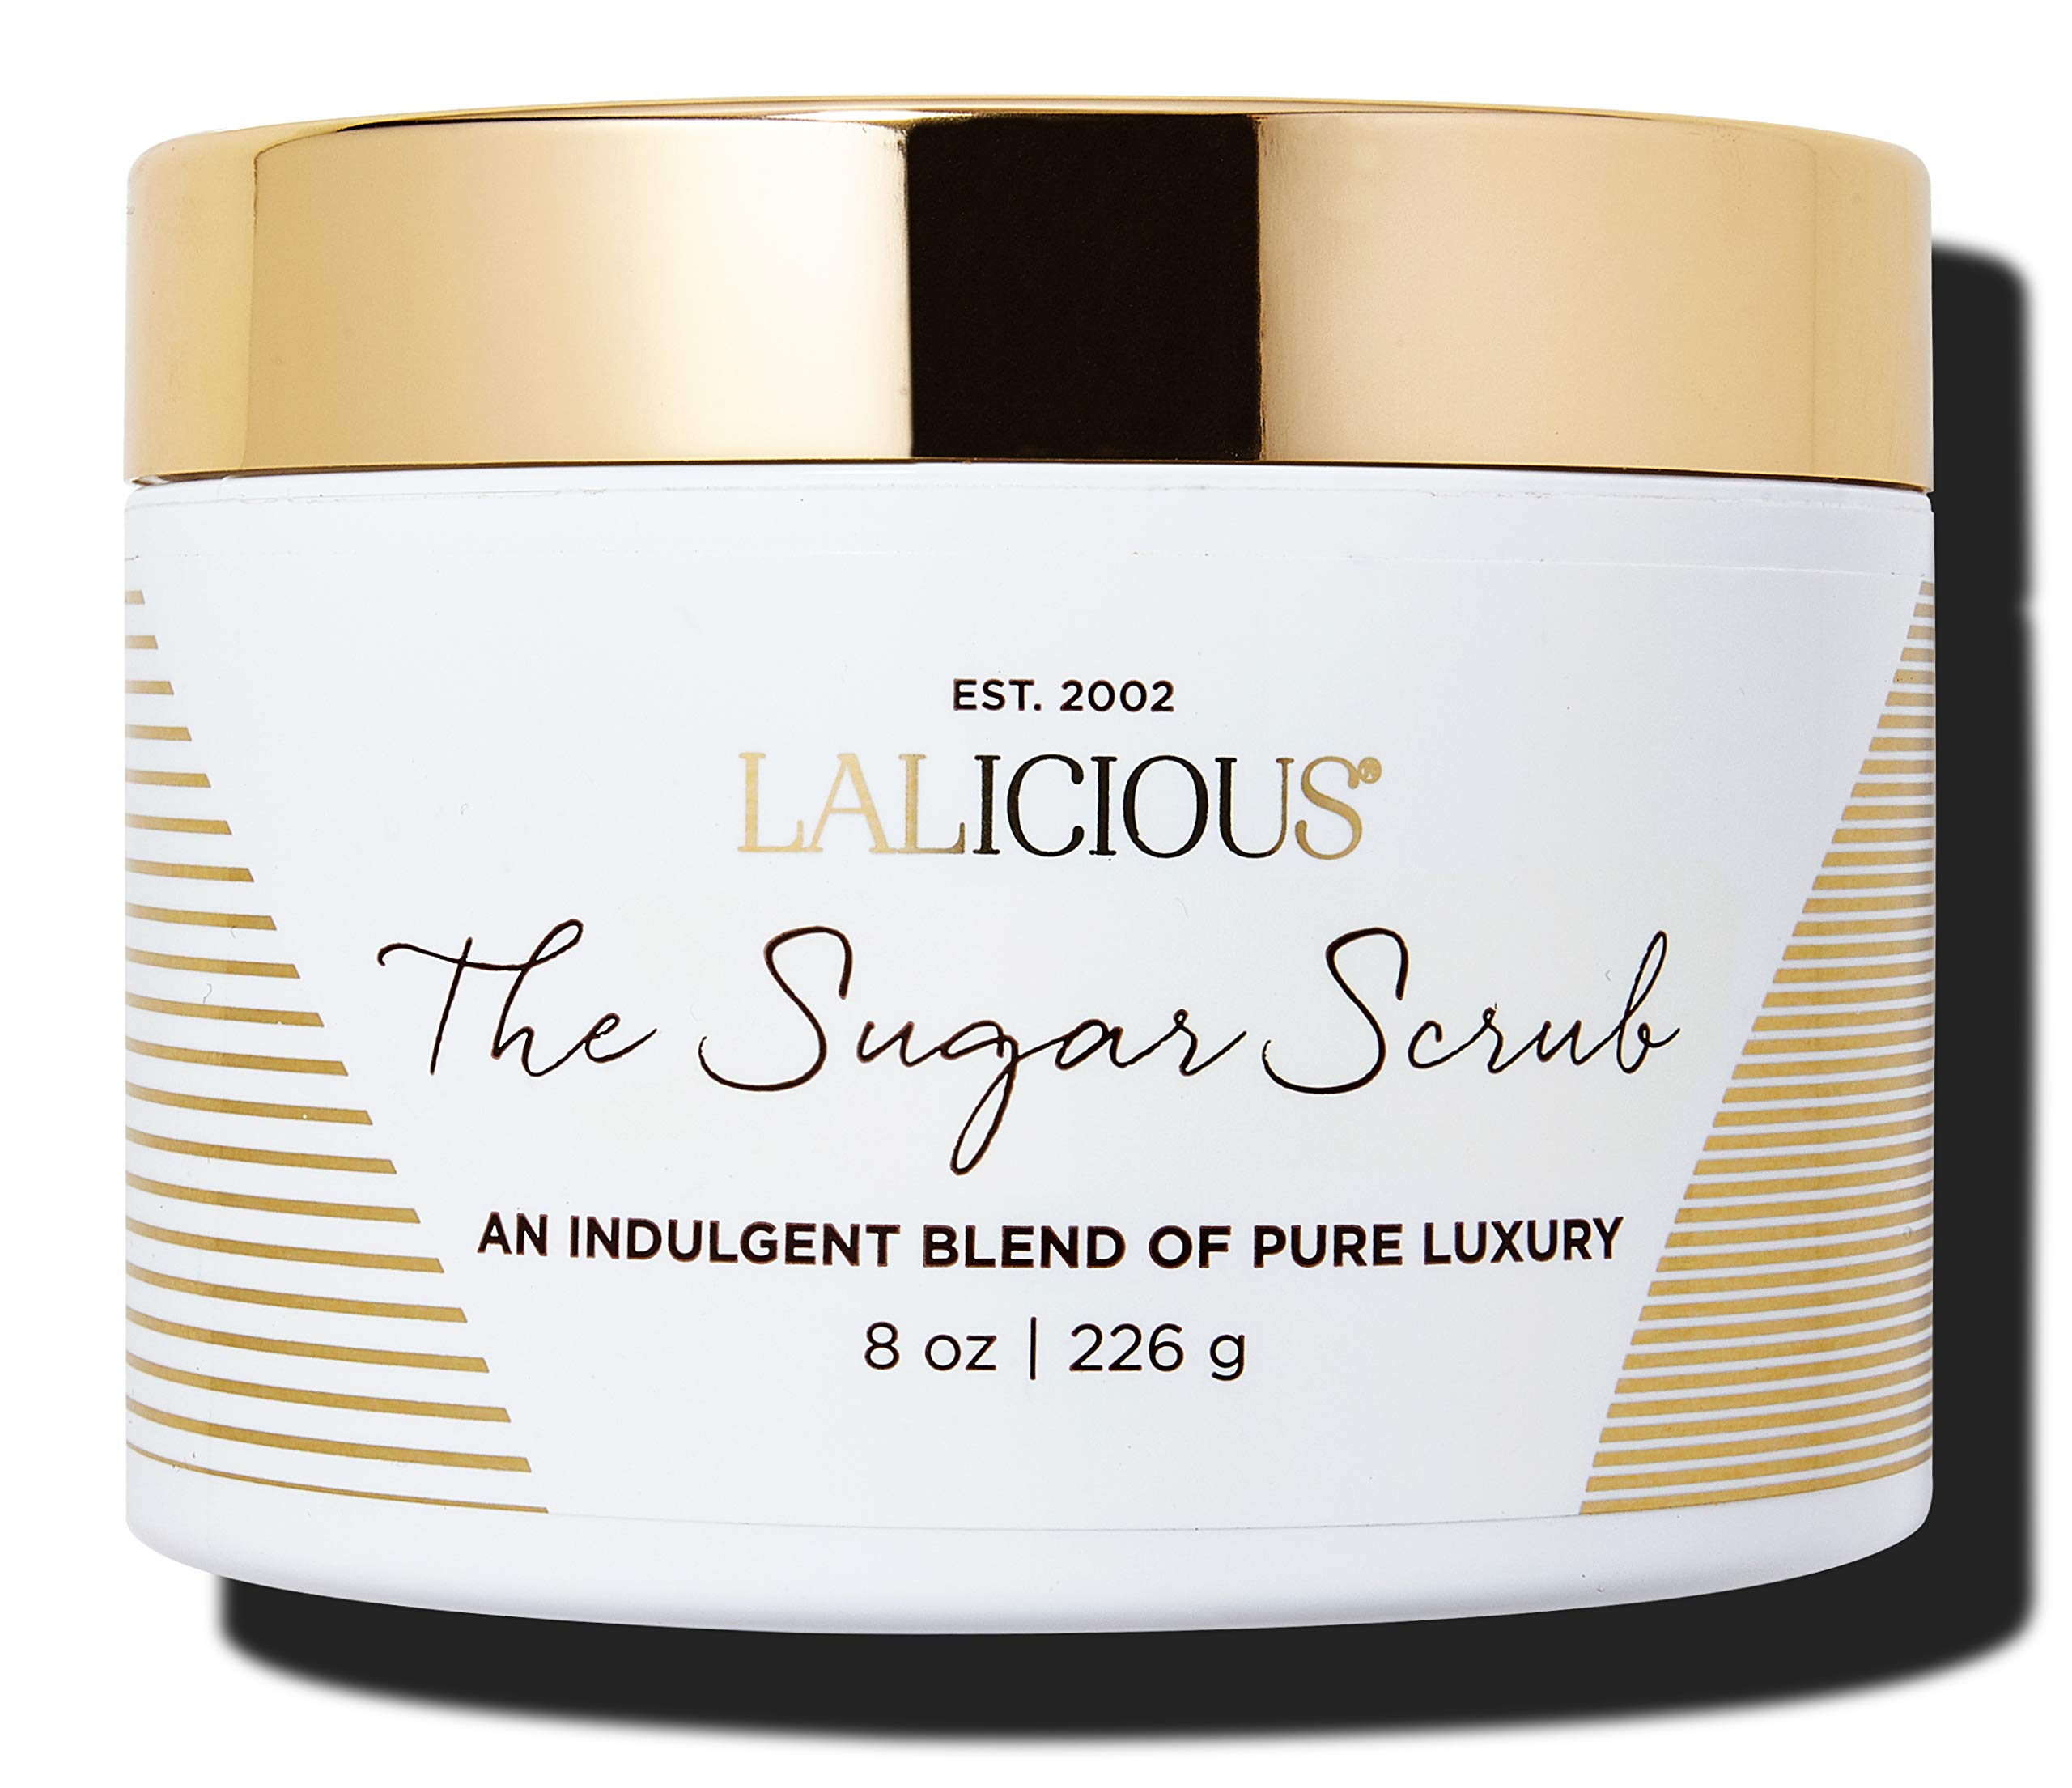 LALICIOUS The Sugar Scrub - Gentle Exfoliating Body Treatment with a Blend of Peach Nectar, Coconut Milk & Creamy Musks (8 Ounces)